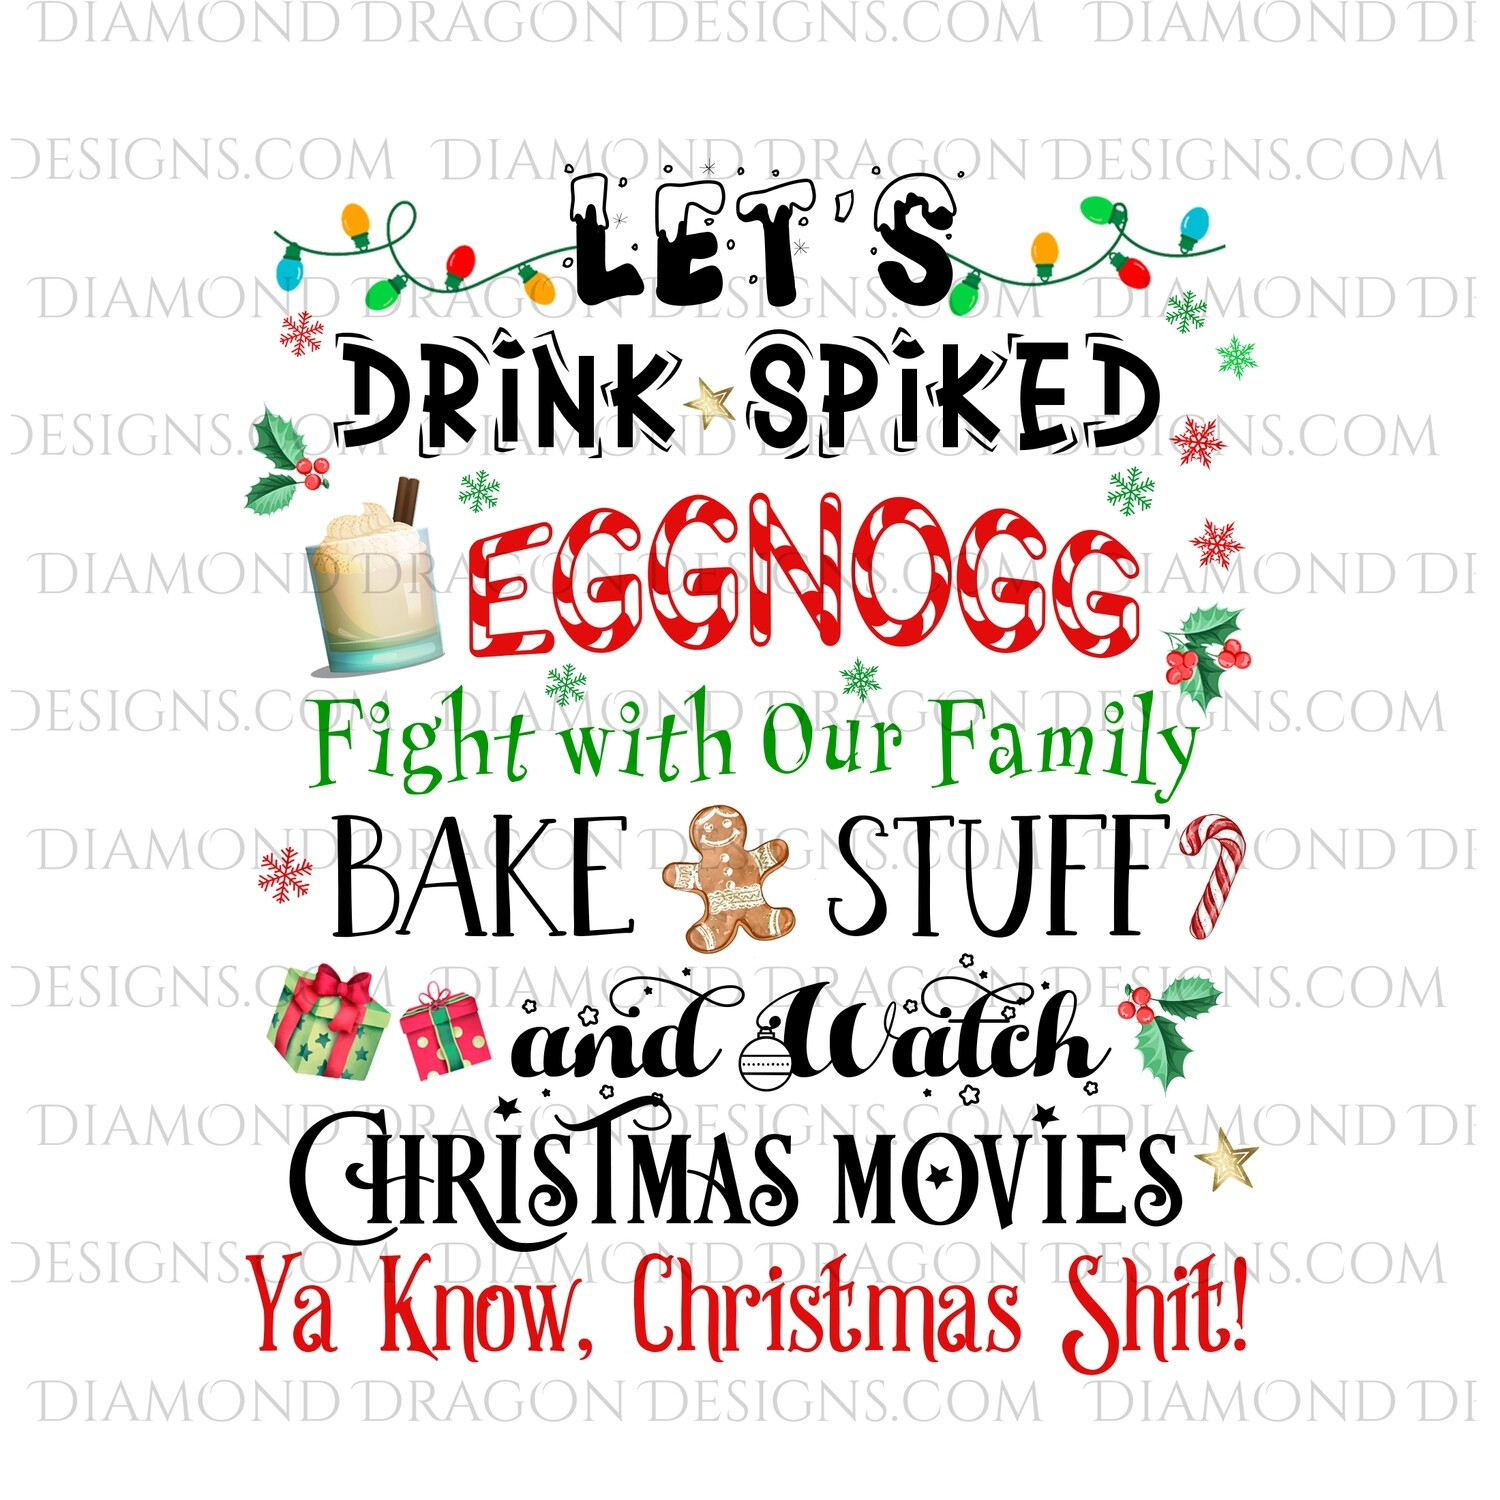 Christmas - Lets Drink Spiked Eggnog, Fight With Our Family, Watch Christmas Movies, Digital Image